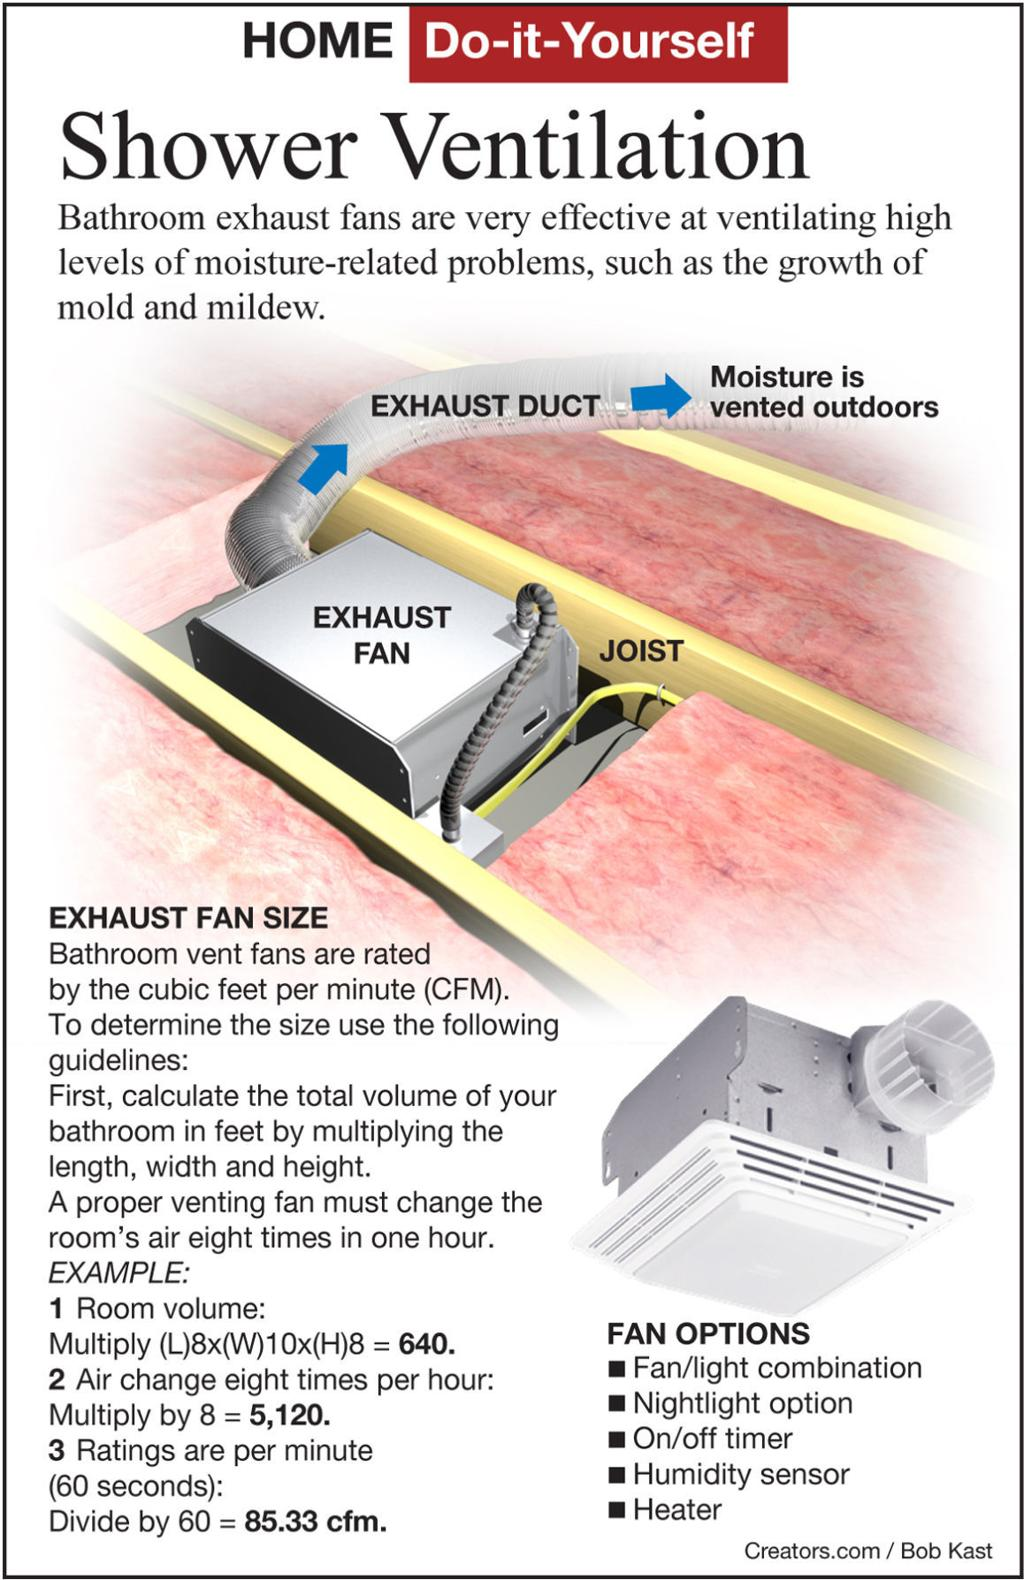 Install A New Bathroom Vent Fan Light, How To Replace Bathroom Vent Light Heater